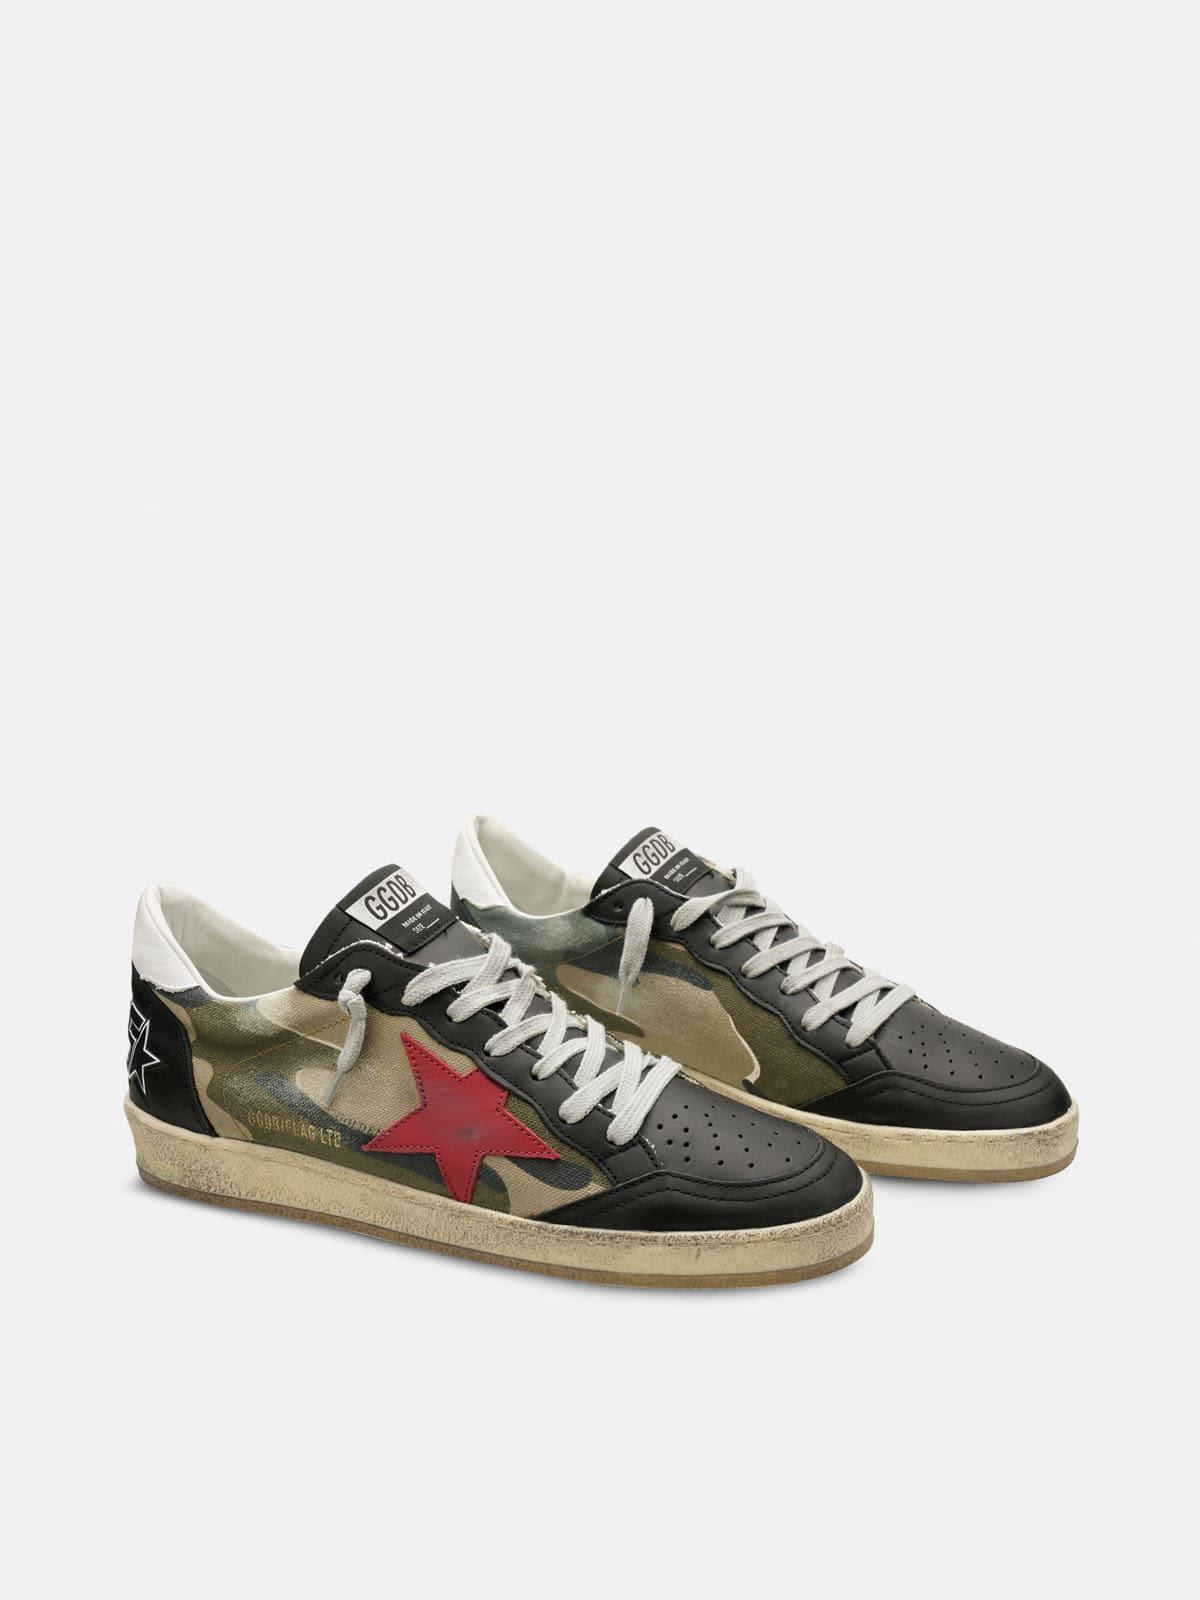 Ball Star sneakers with camouflage print